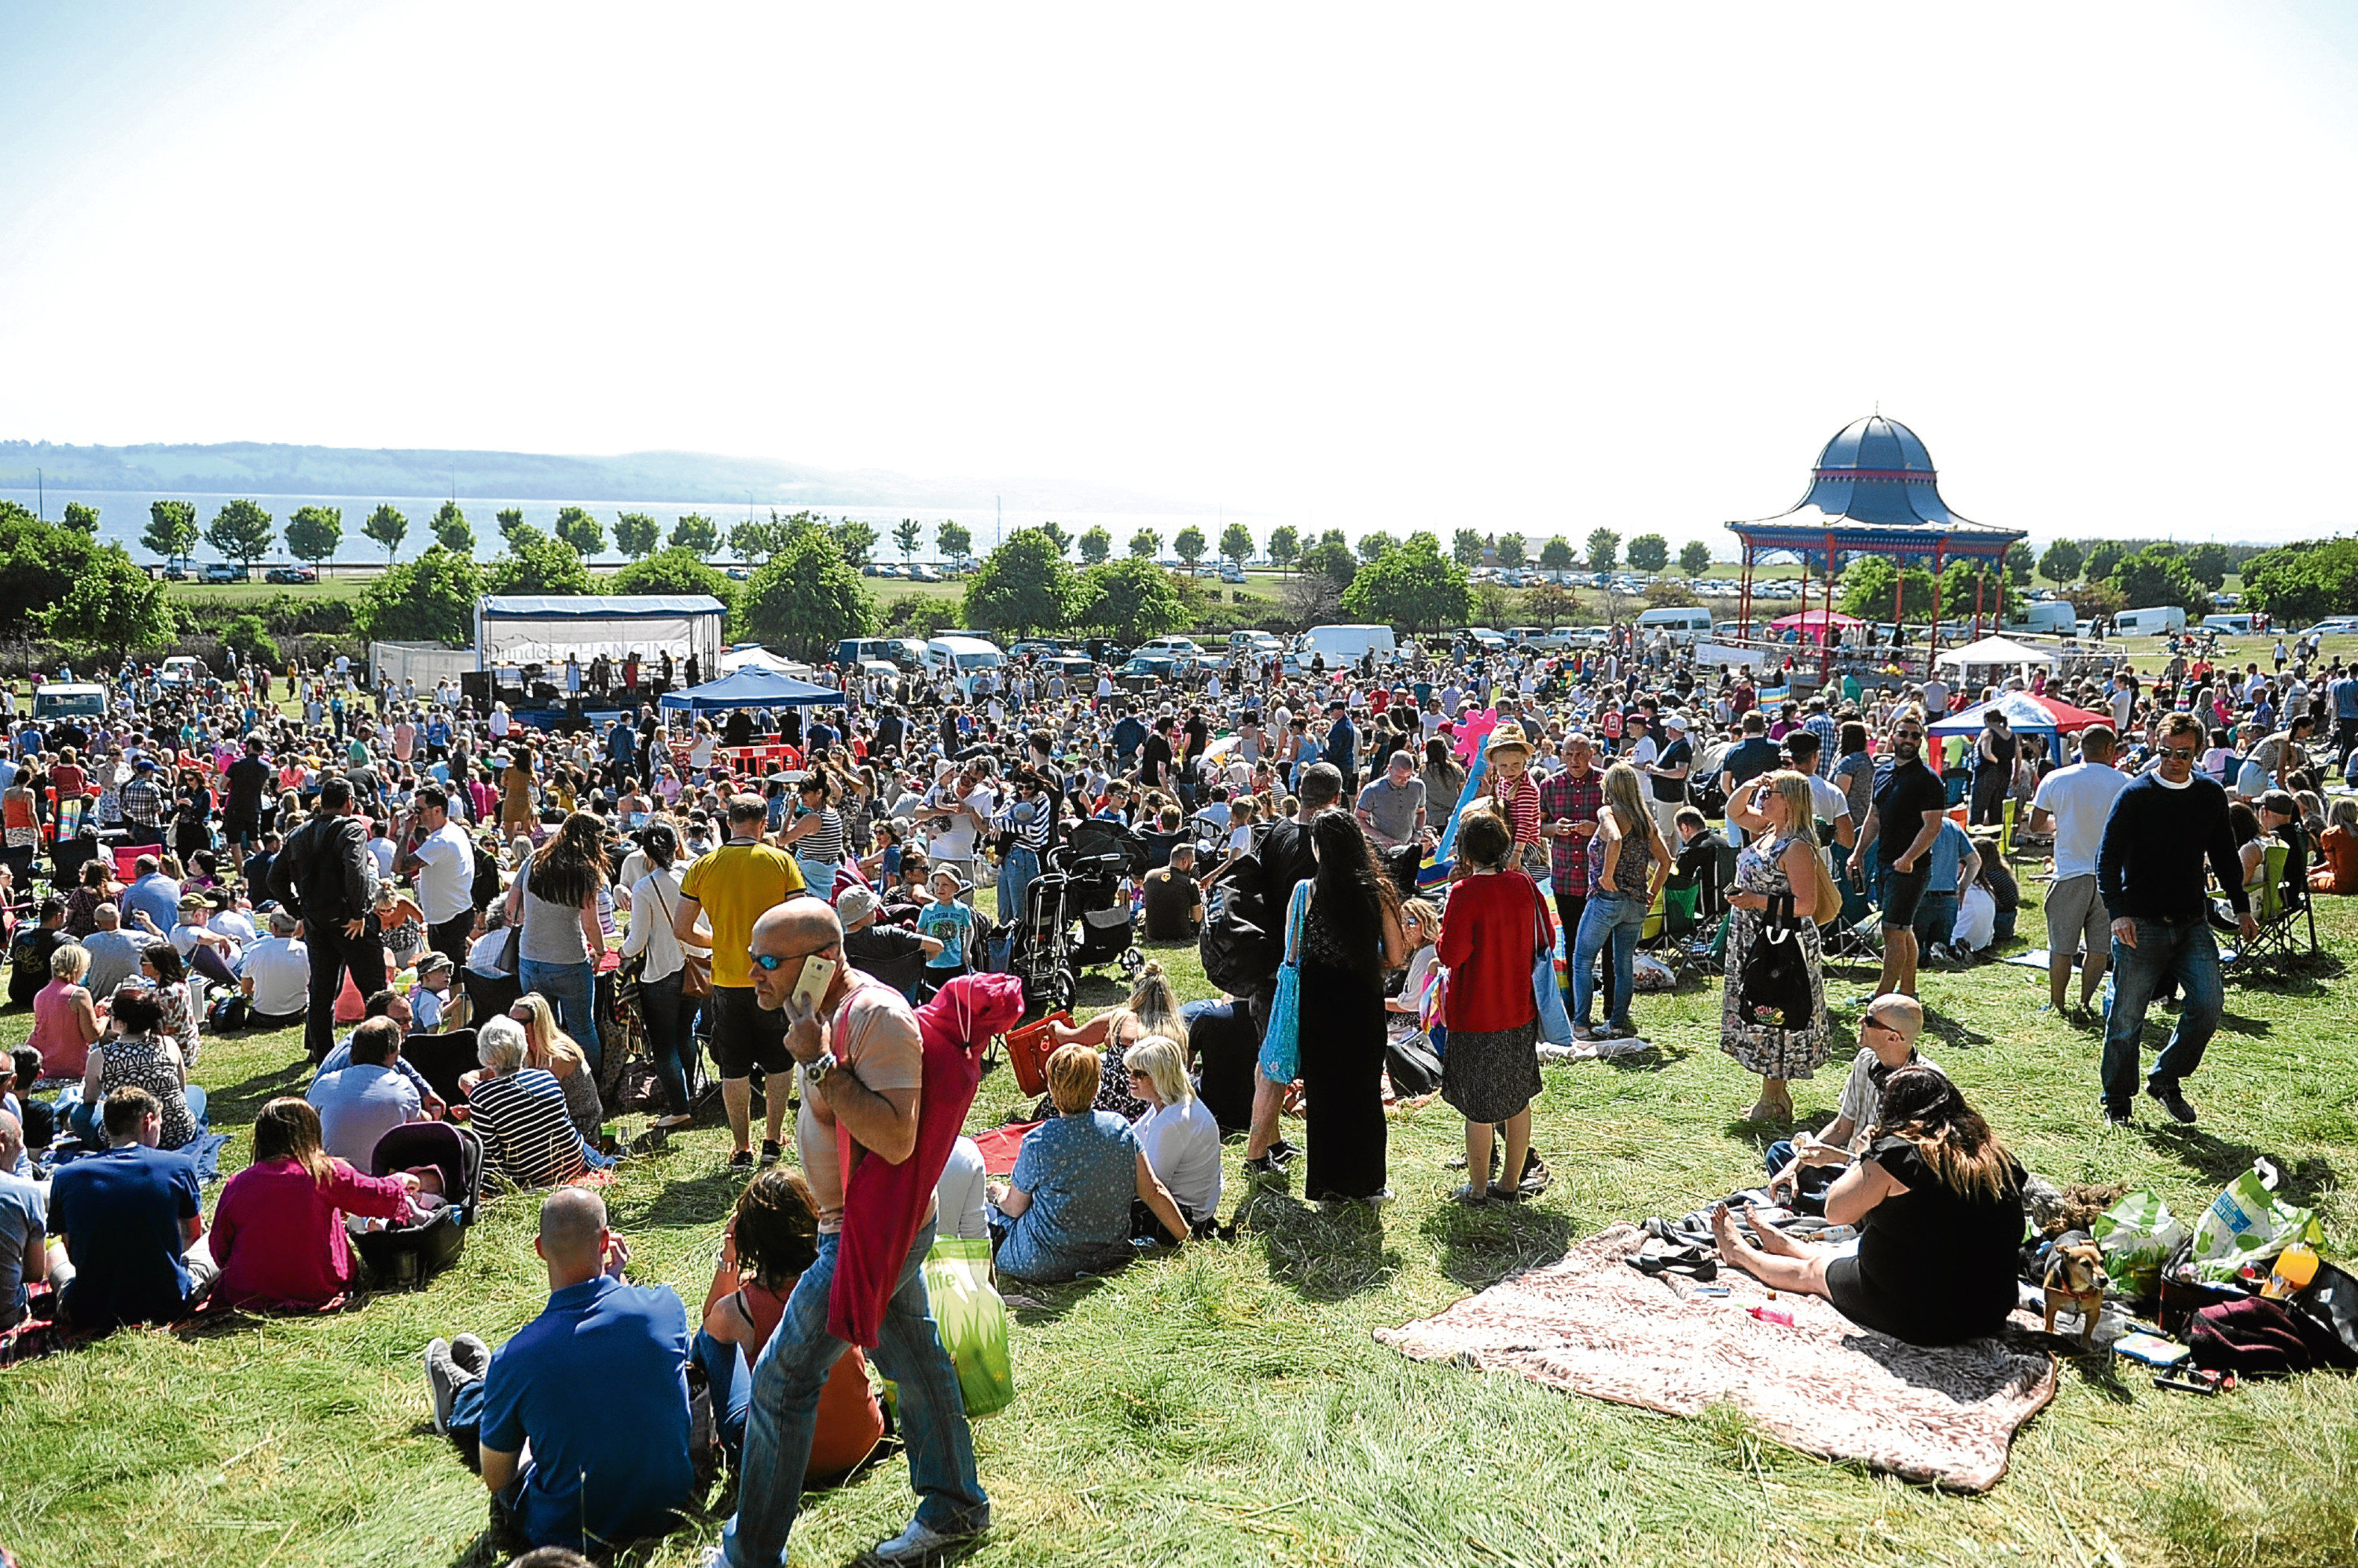 Part of the large crowd at last year's Westfest event